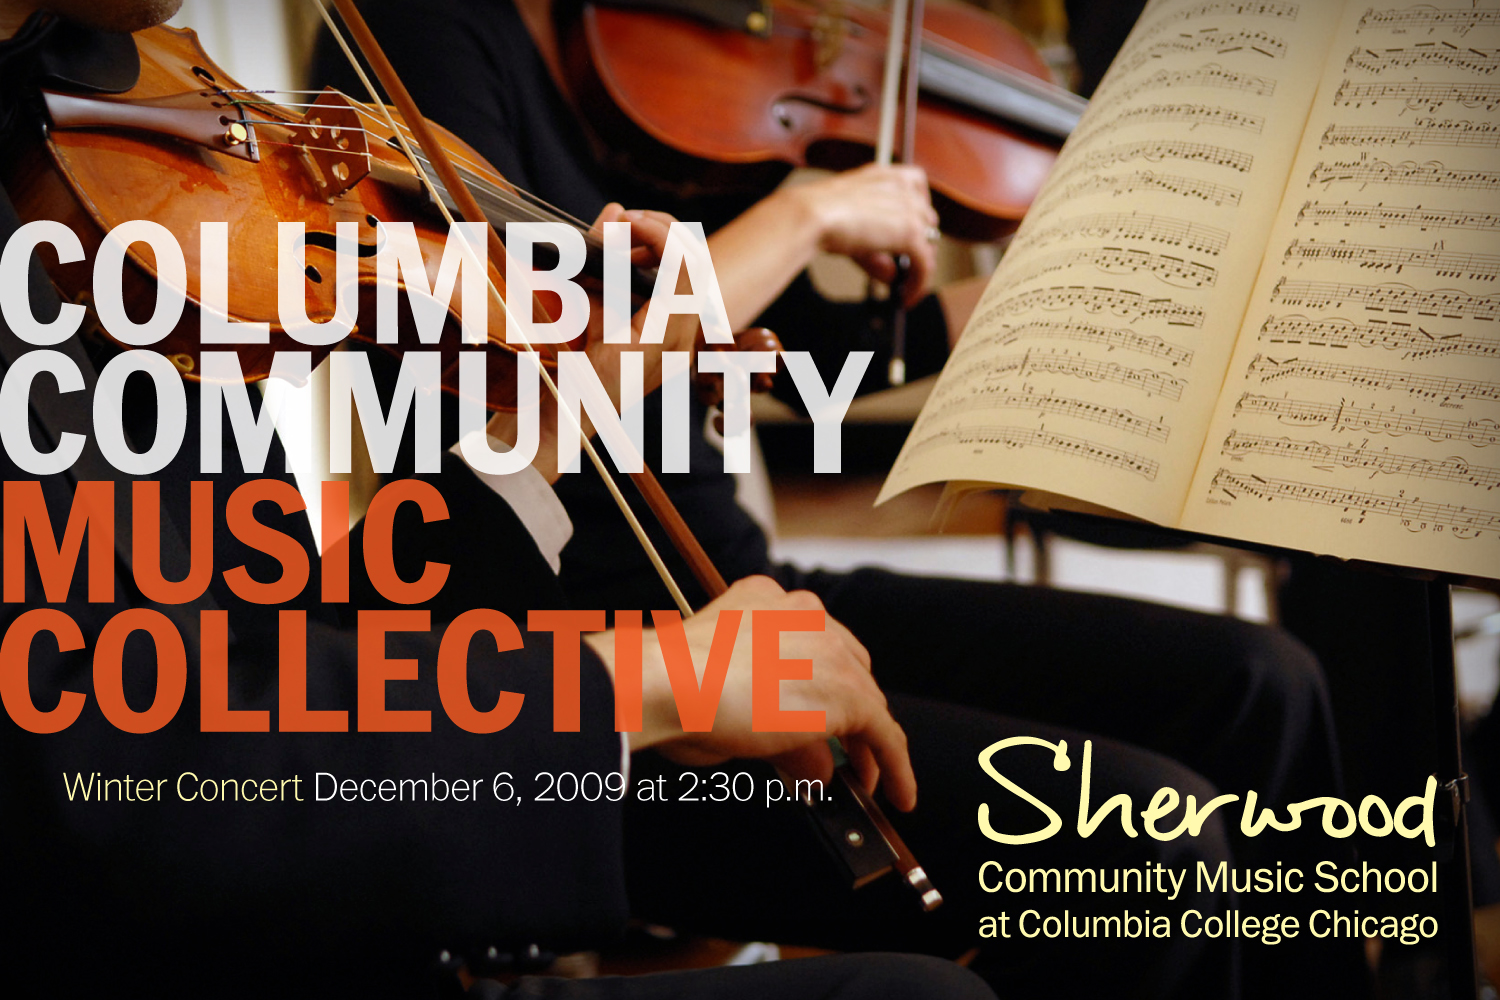 Winter Concert presented by Sherwood Community Music School at Columbia College Chicago